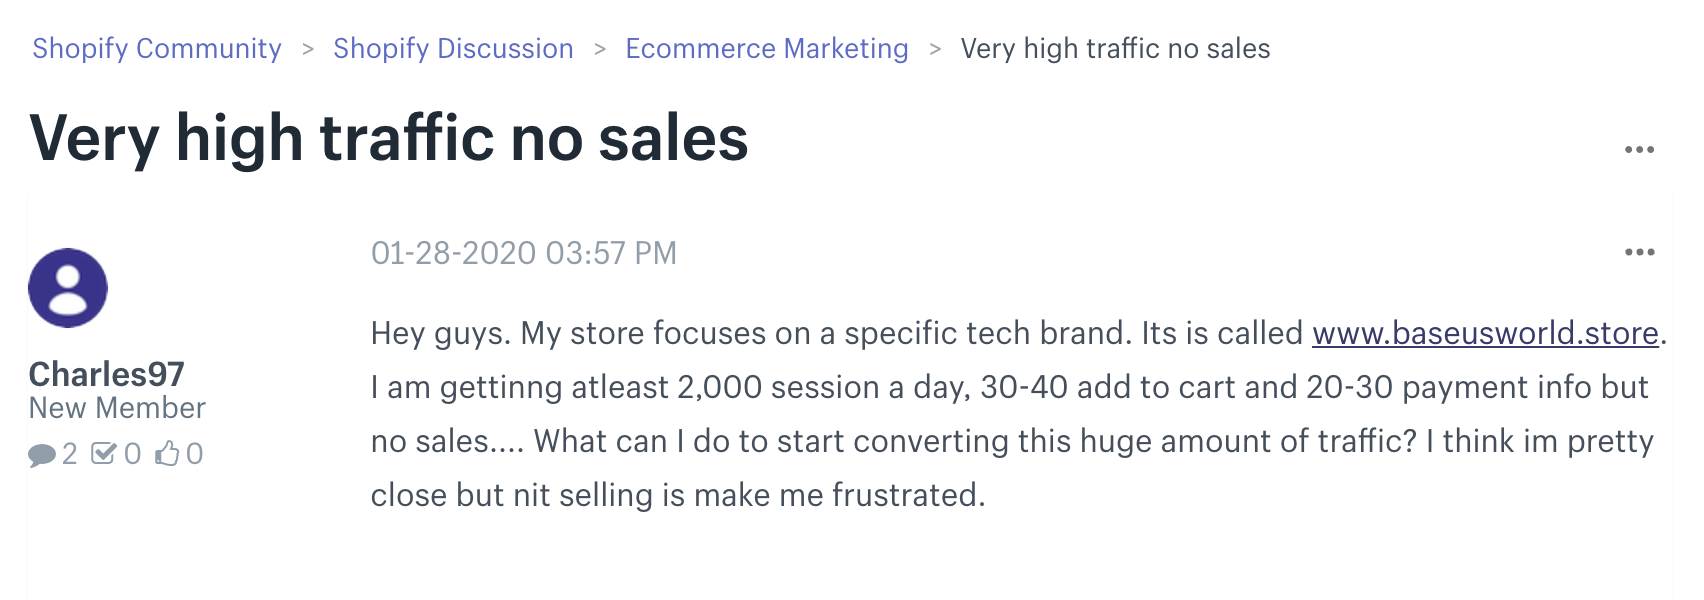 shopify community discussion about very high traffic but no sales